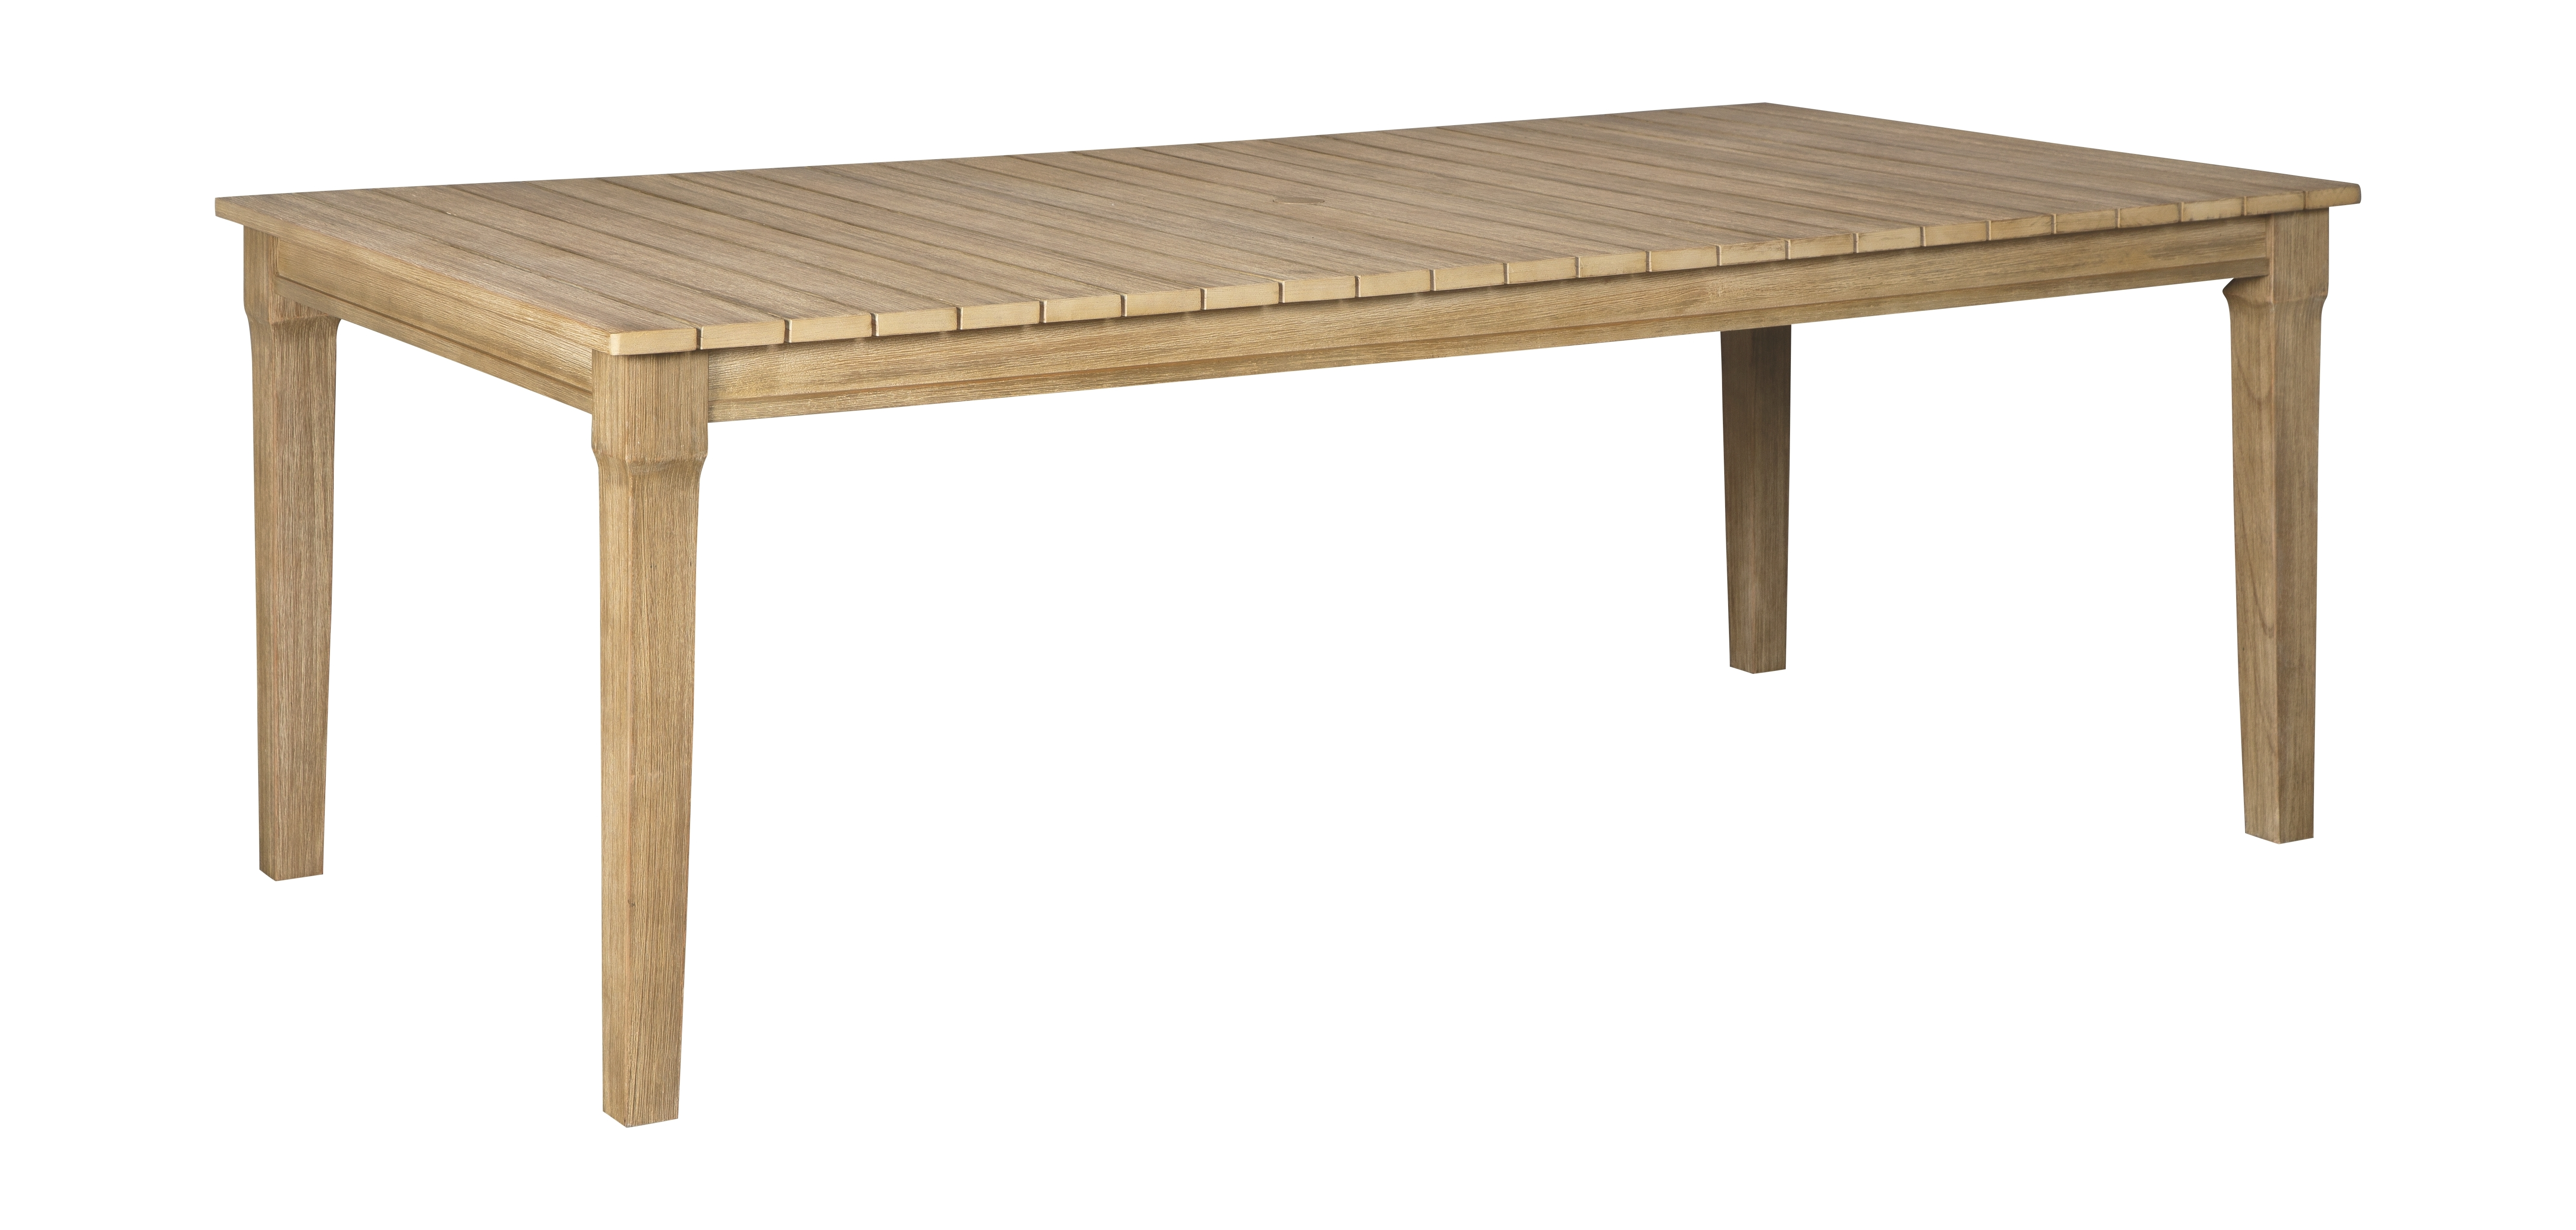 Clare View - Beige - RECT Dining Table w/UMB OPT ... on Clare View Beige Outdoor Living Room id=66583